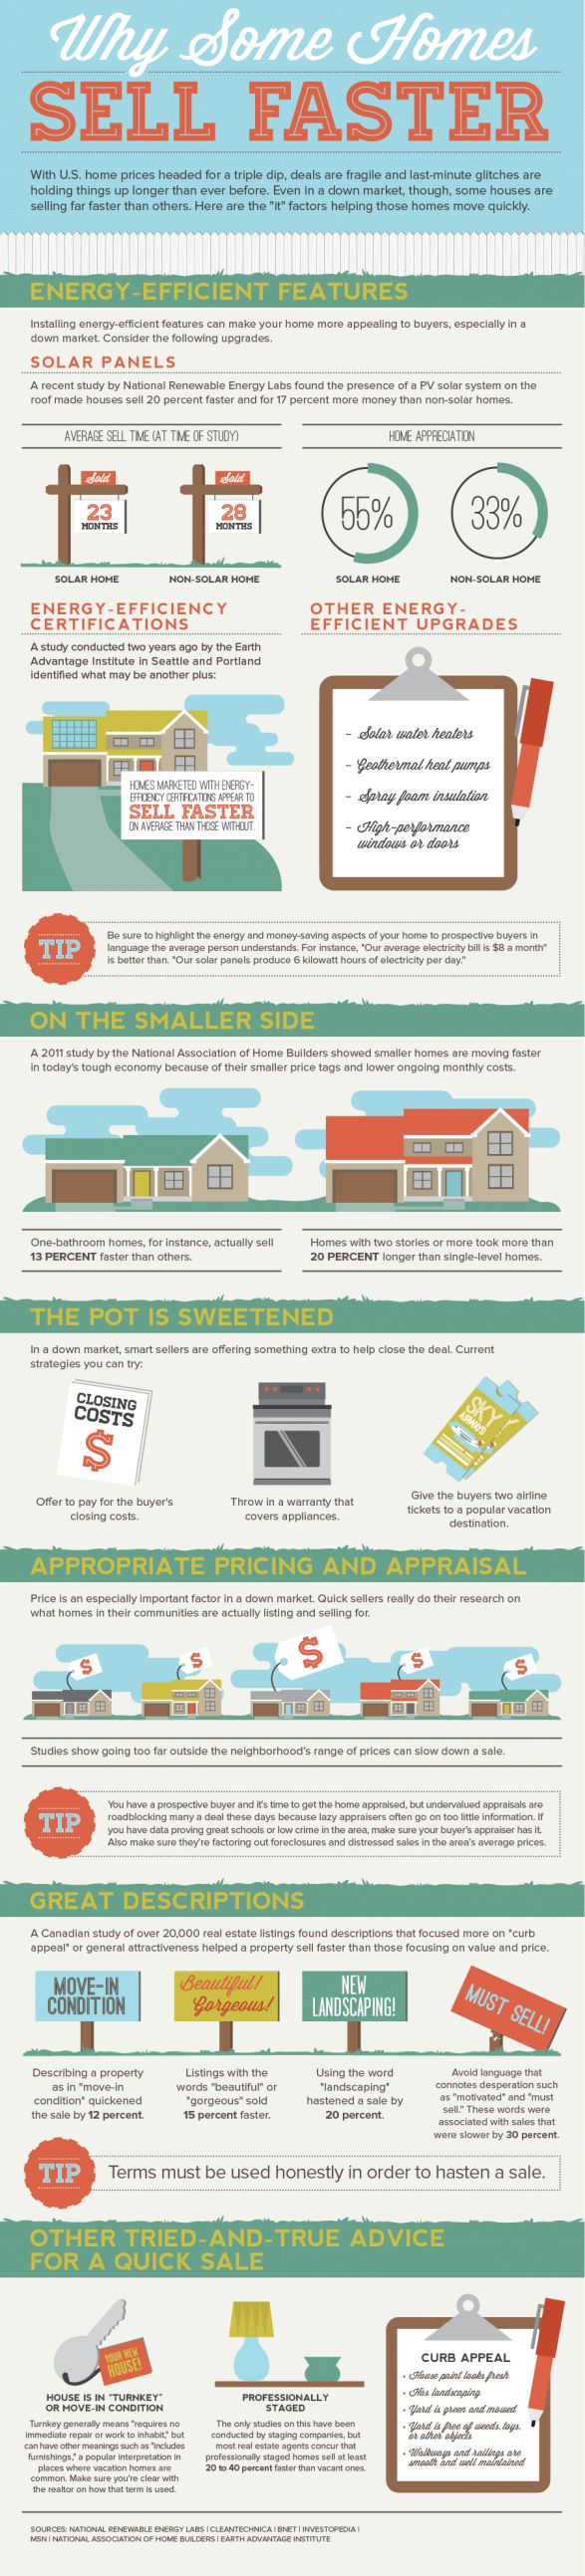 What makes a home sell faster? It's not JUST home staging... | SAR Home Staging And Redesign Training